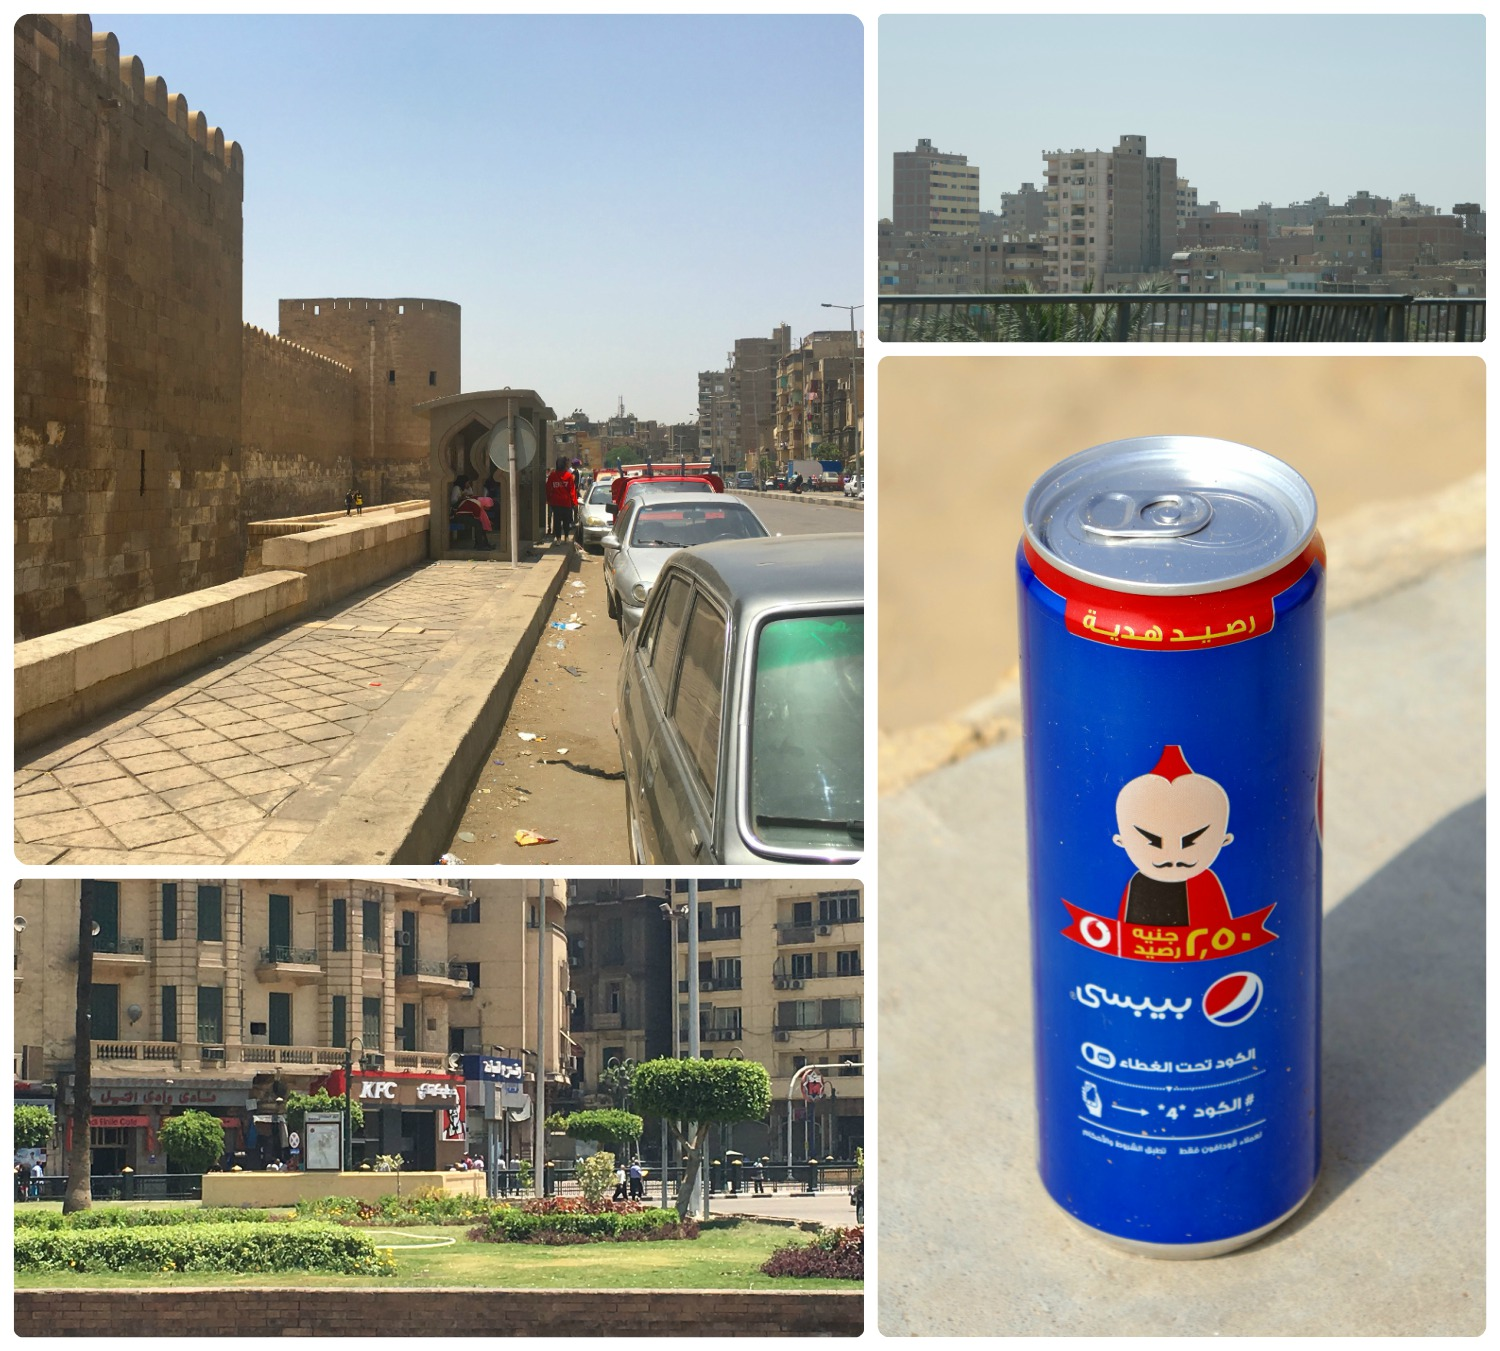 Driving around Cairo is full of sights that are very different from our home. From the bus stops (top left) to the fast food restaurant signs (bottom right) and product labeling in Arabic (bottom right).